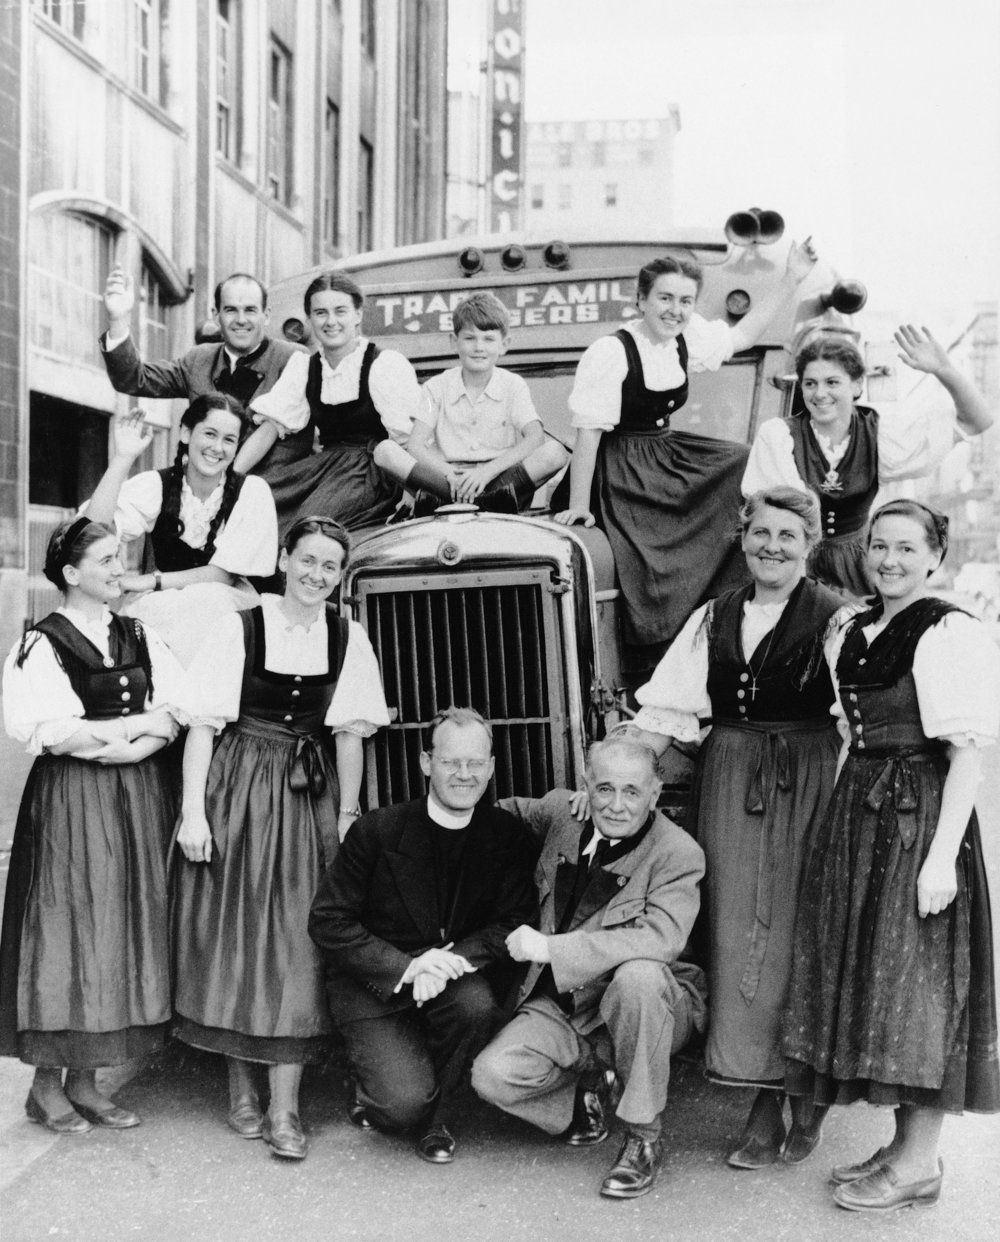 Von Trapp Family, Made Famous by the Sound of Music